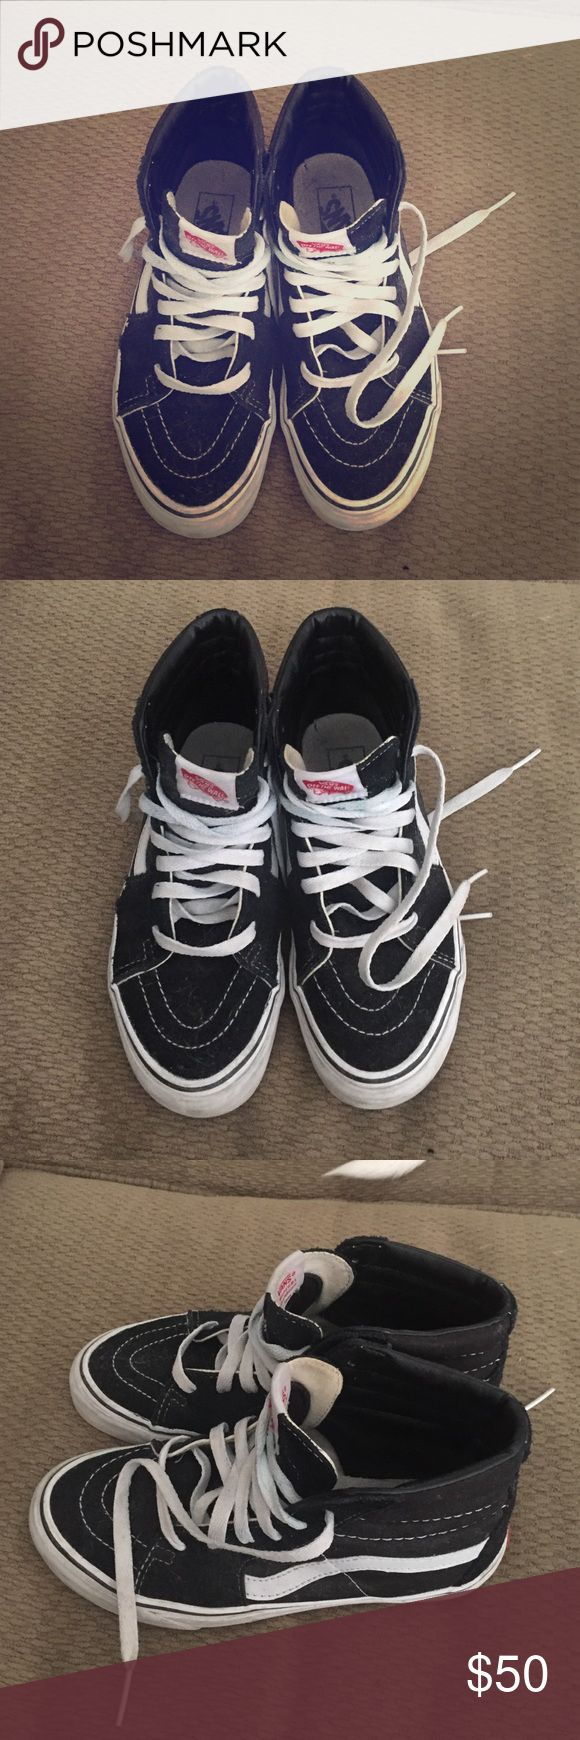 Vans girls skate highs Great condition worn a few times! Vans Shoes Sneakers